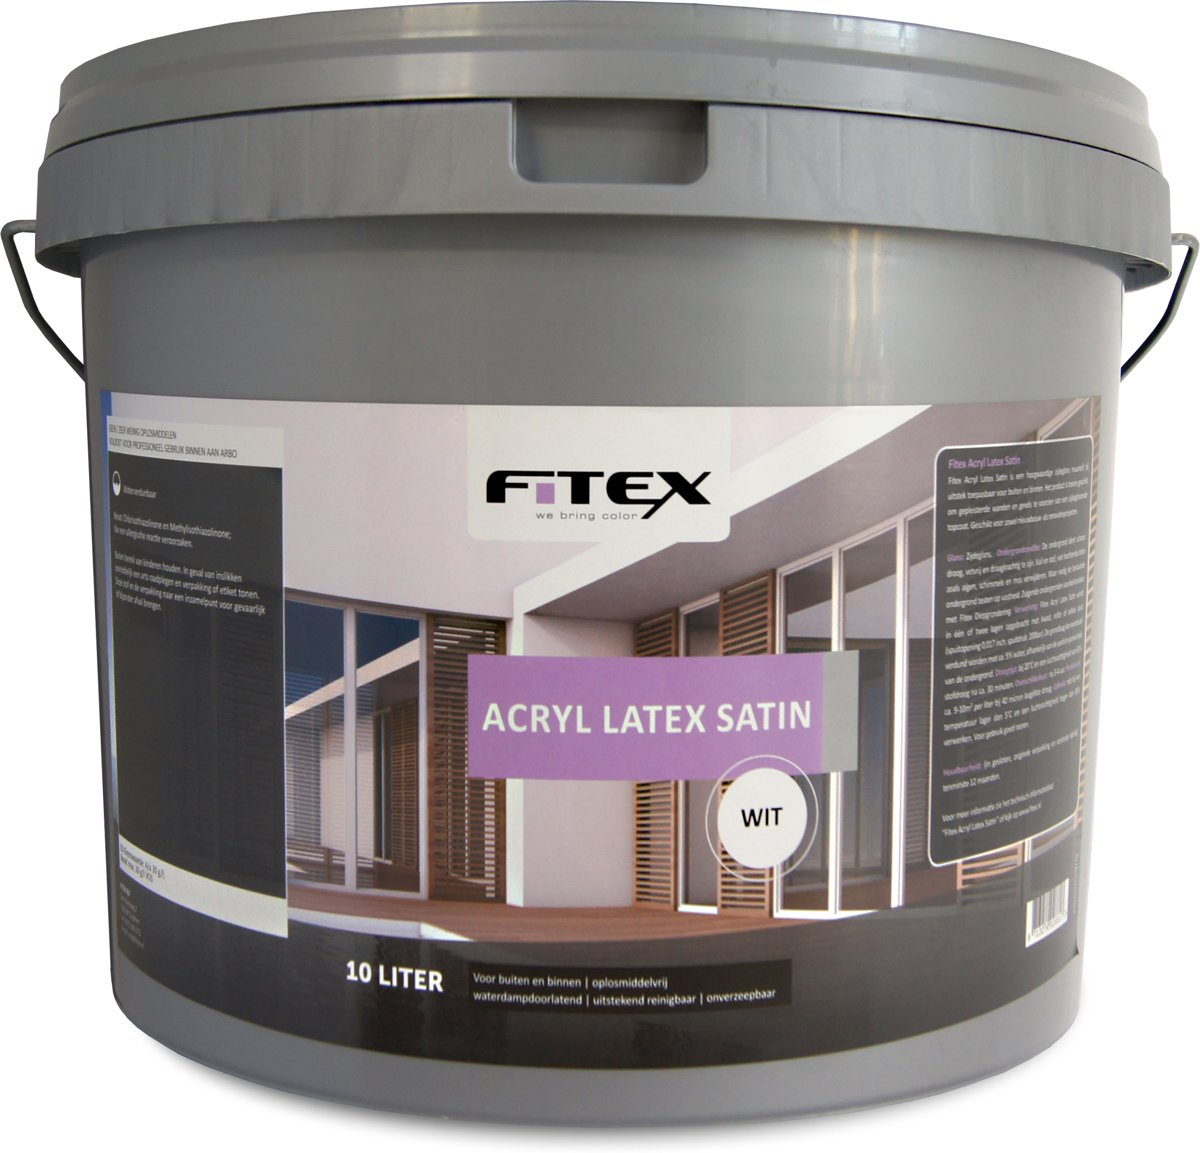 Latex Ral 9010 Fitex Muurverf Acryl Latex Satin Ral 9010 Zuiver Wit 10 Liter